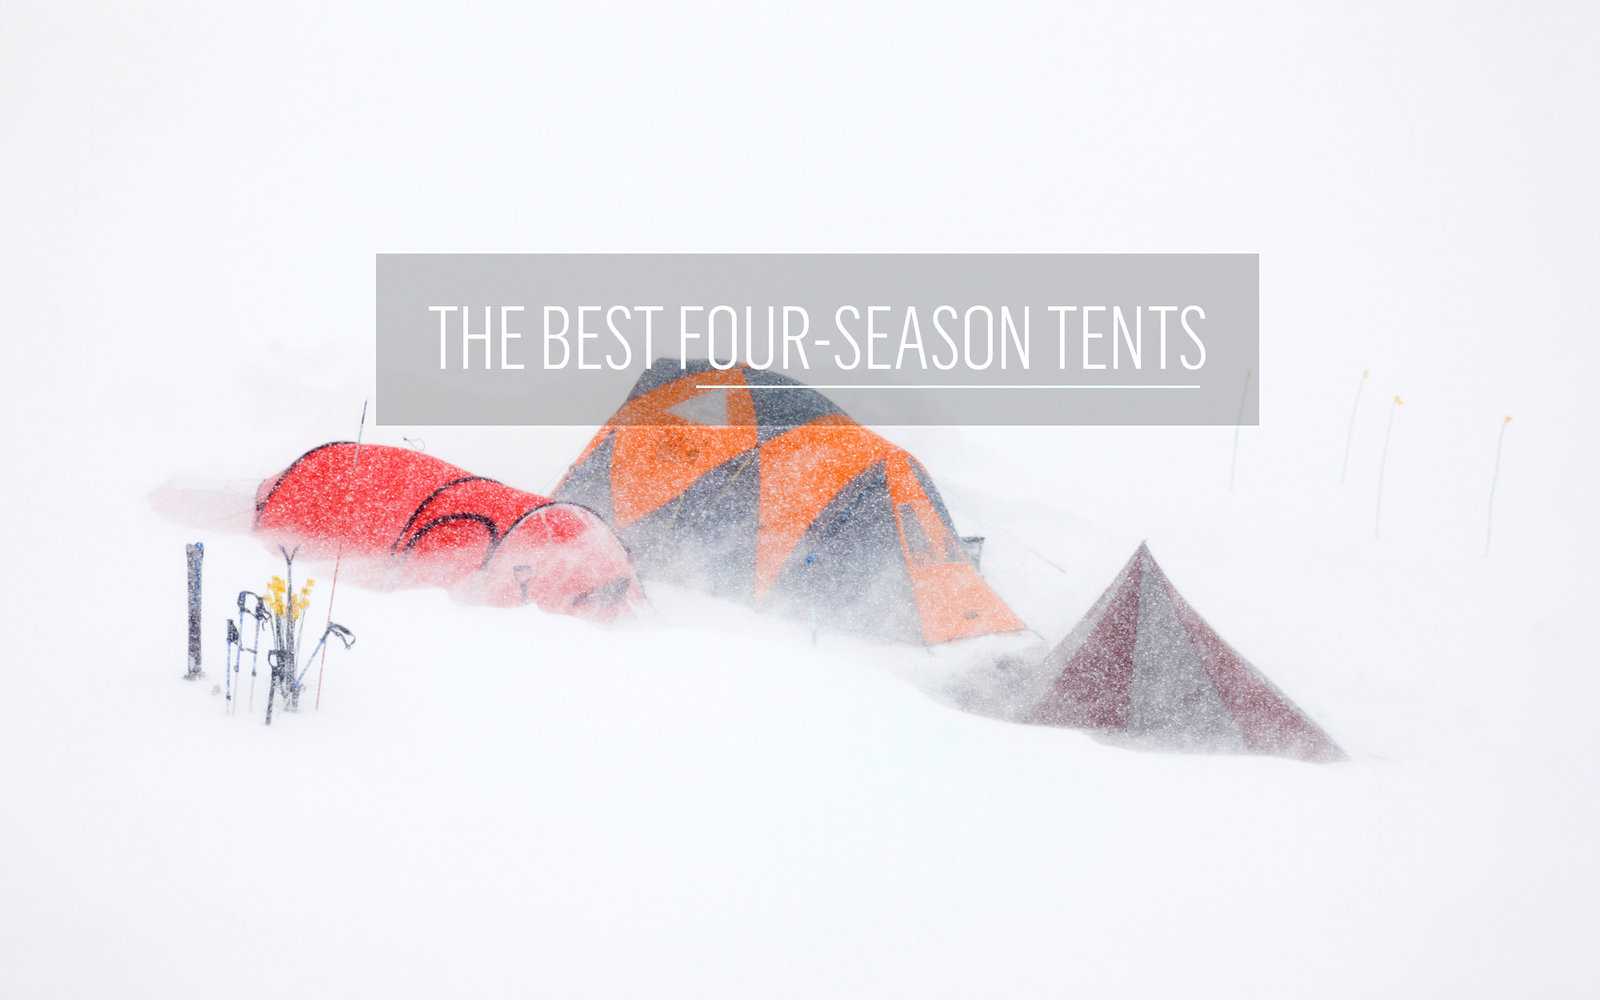 Four-Season Tents